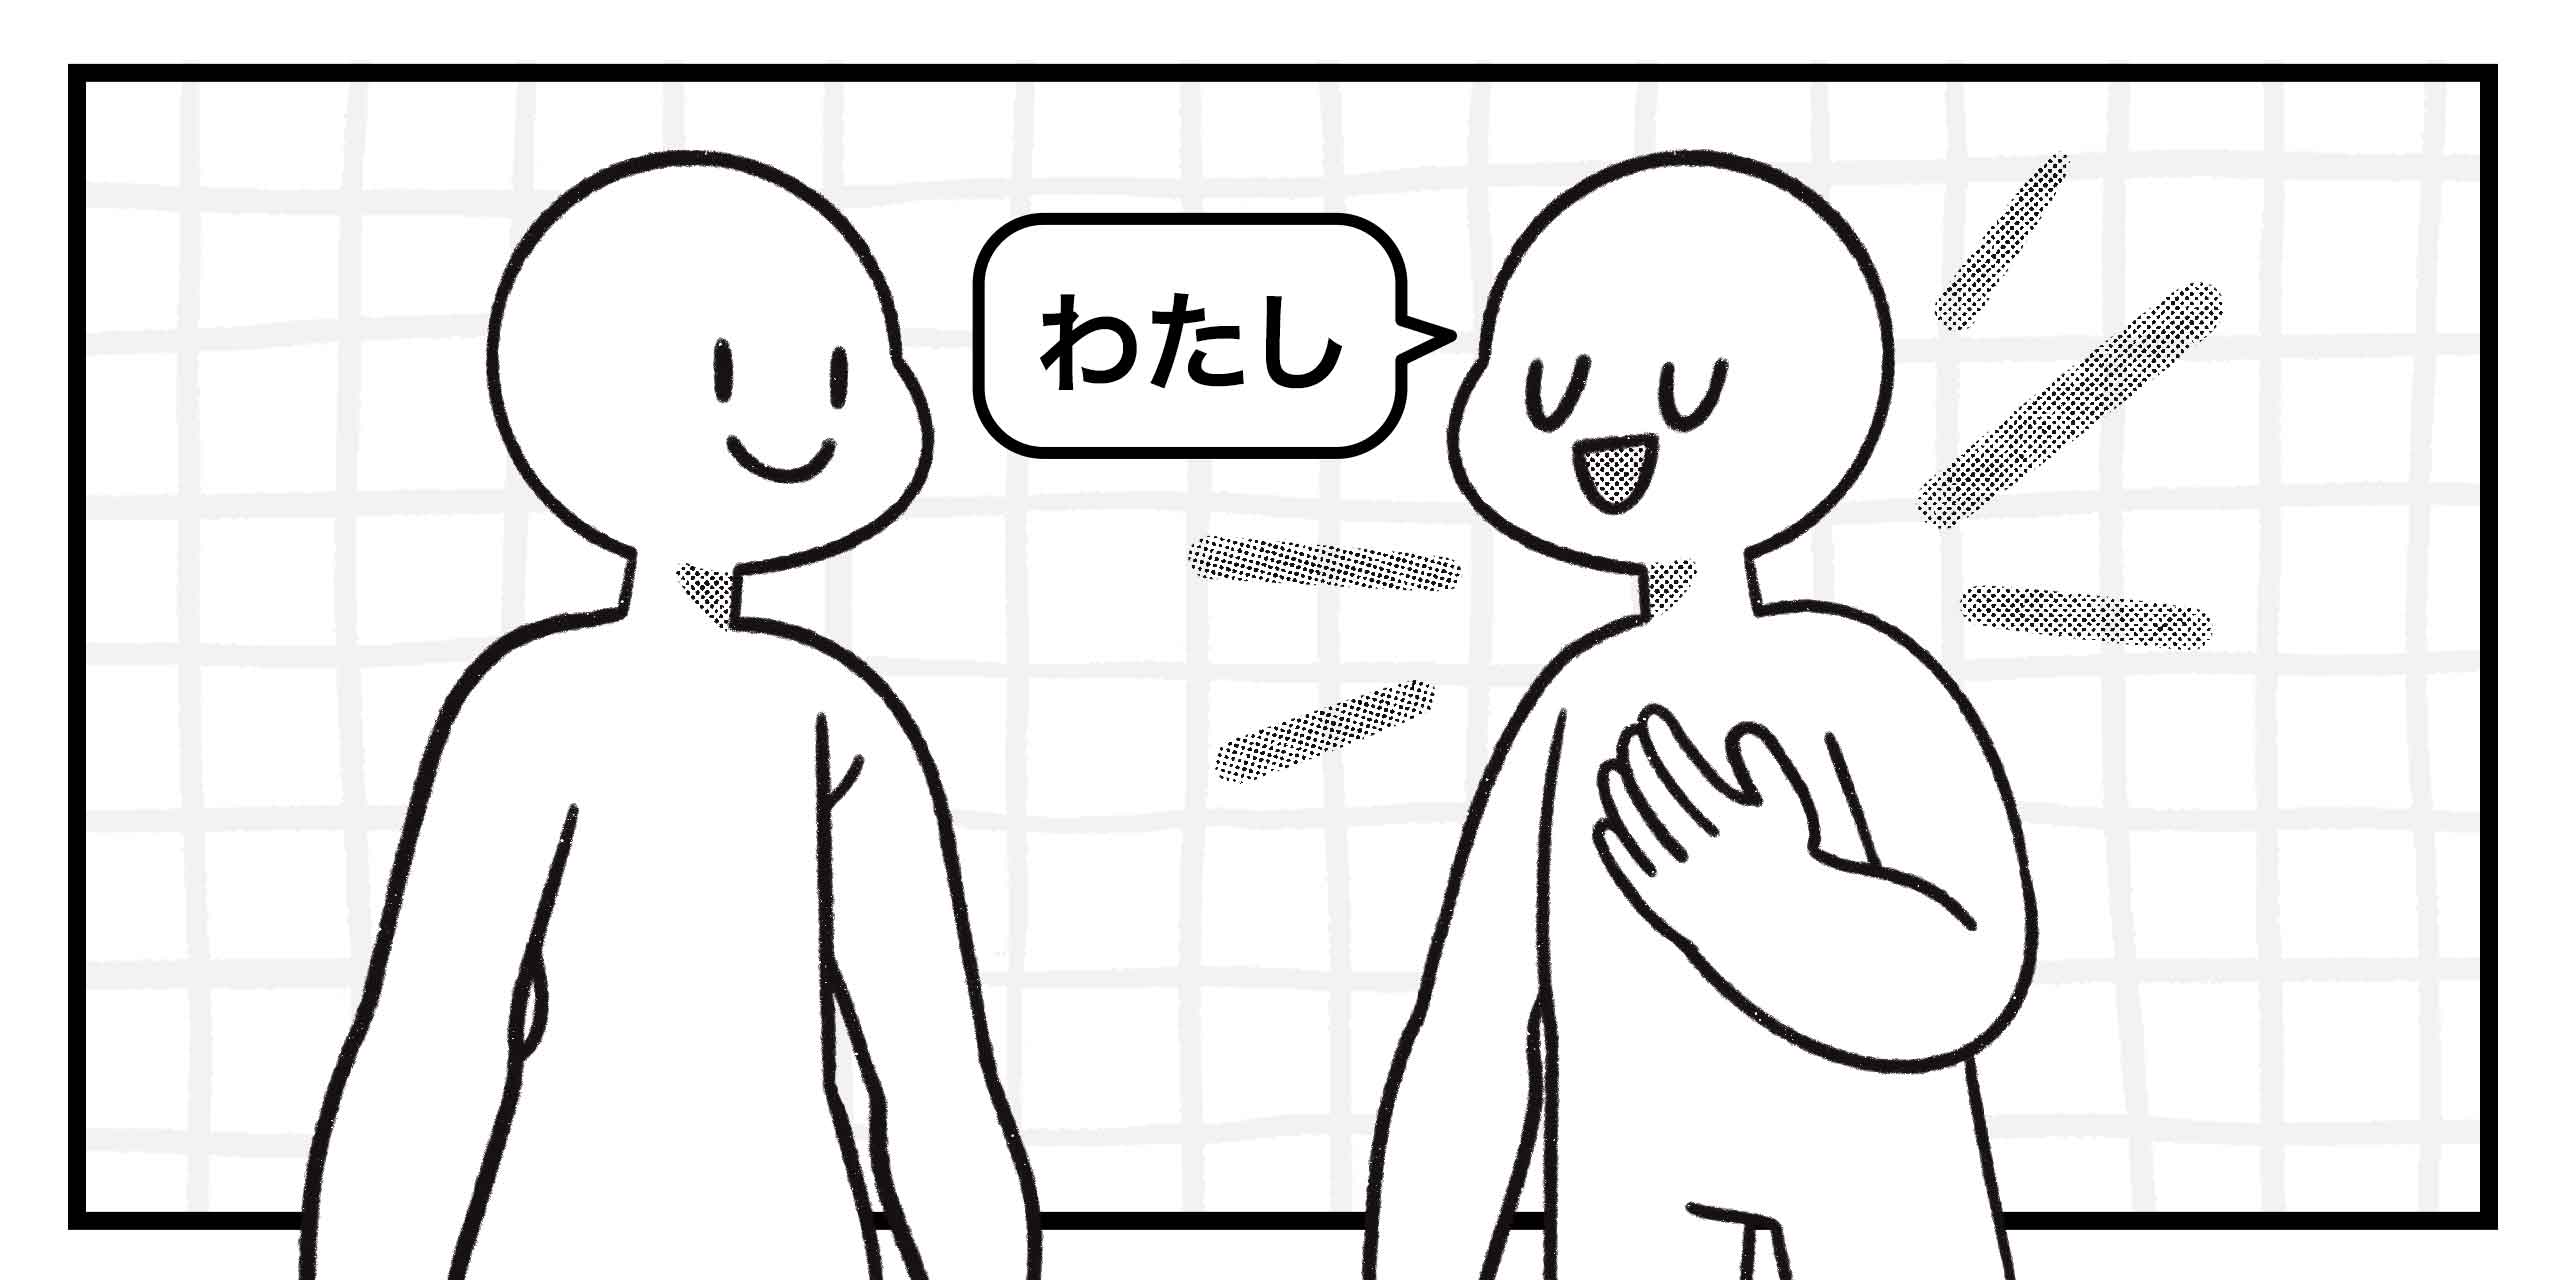 a speaker refering to themselves using a first-person pronoun, わたし